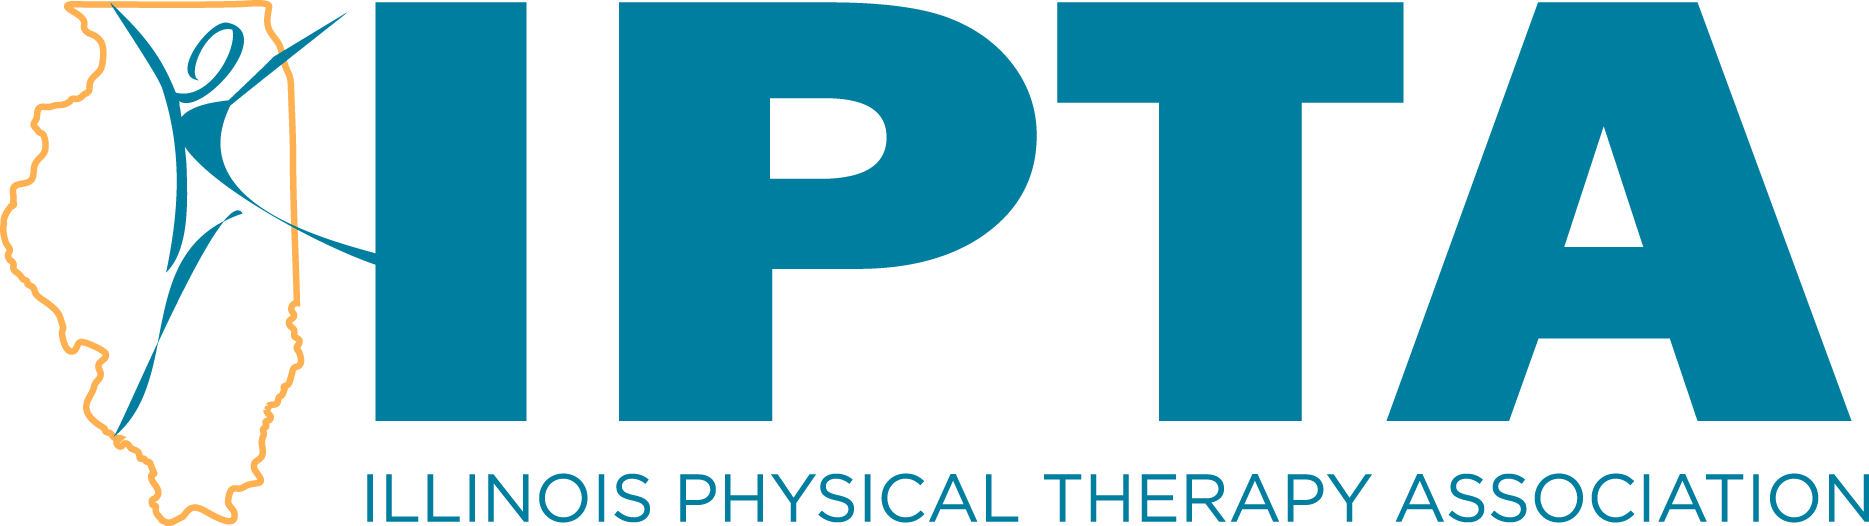 Illinois Physical Therapy Association